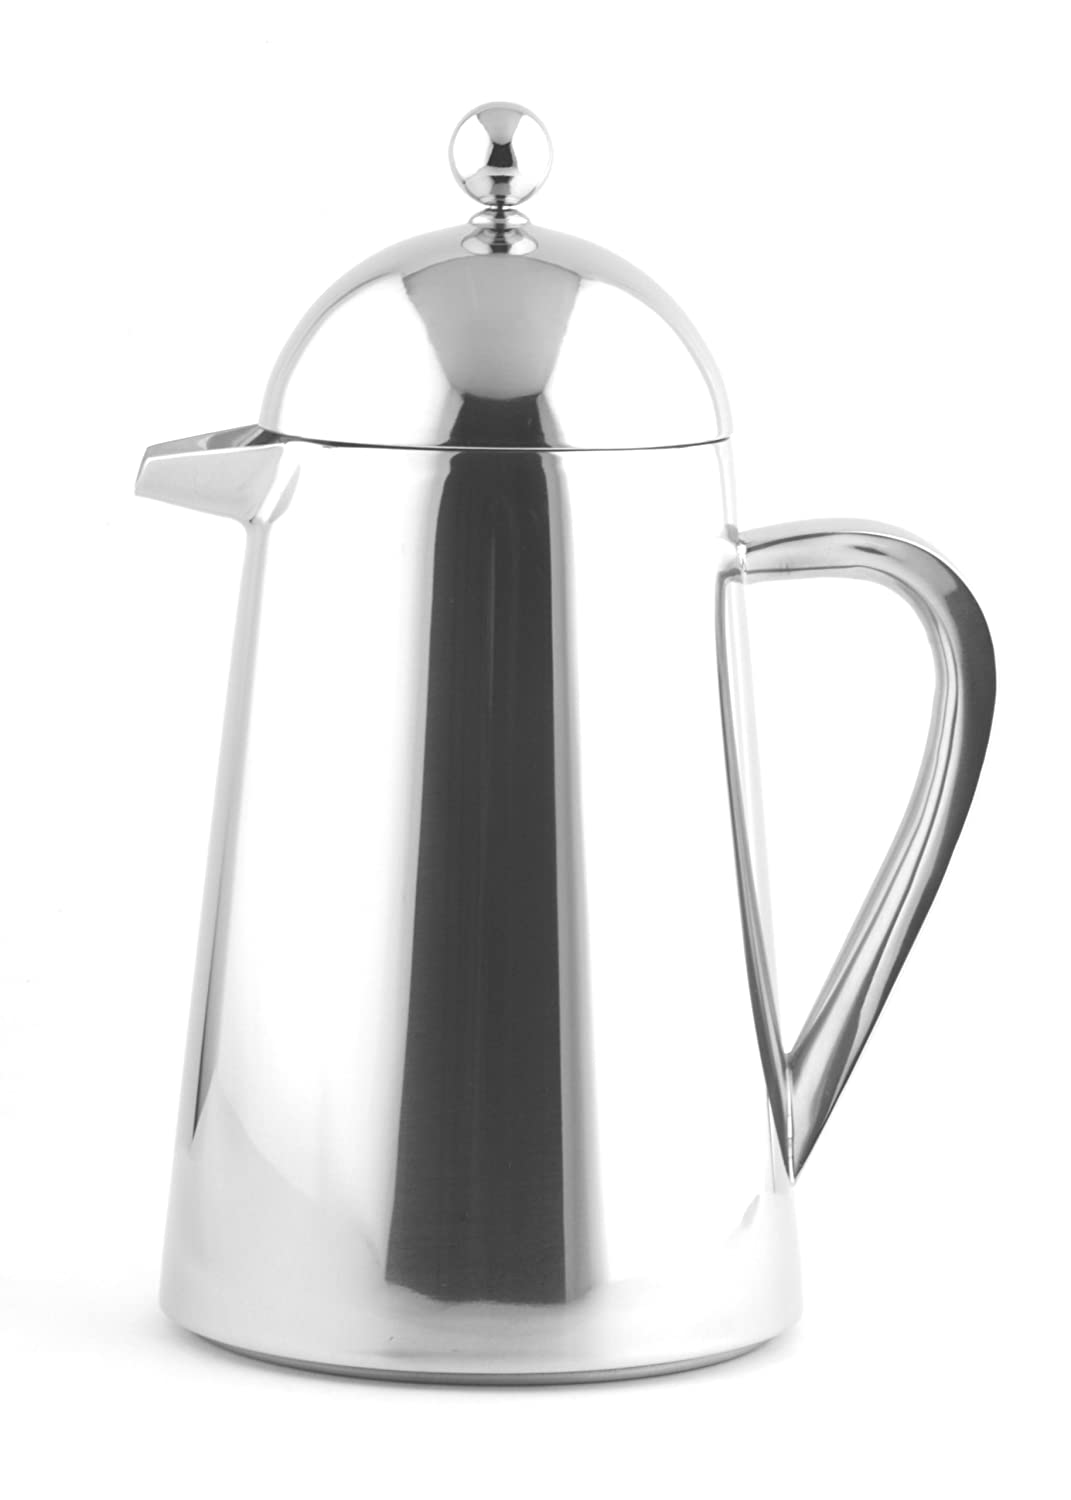 Francois et Mimi Stainless Steel Double Wall French Coffee Press (12oz) $20.99